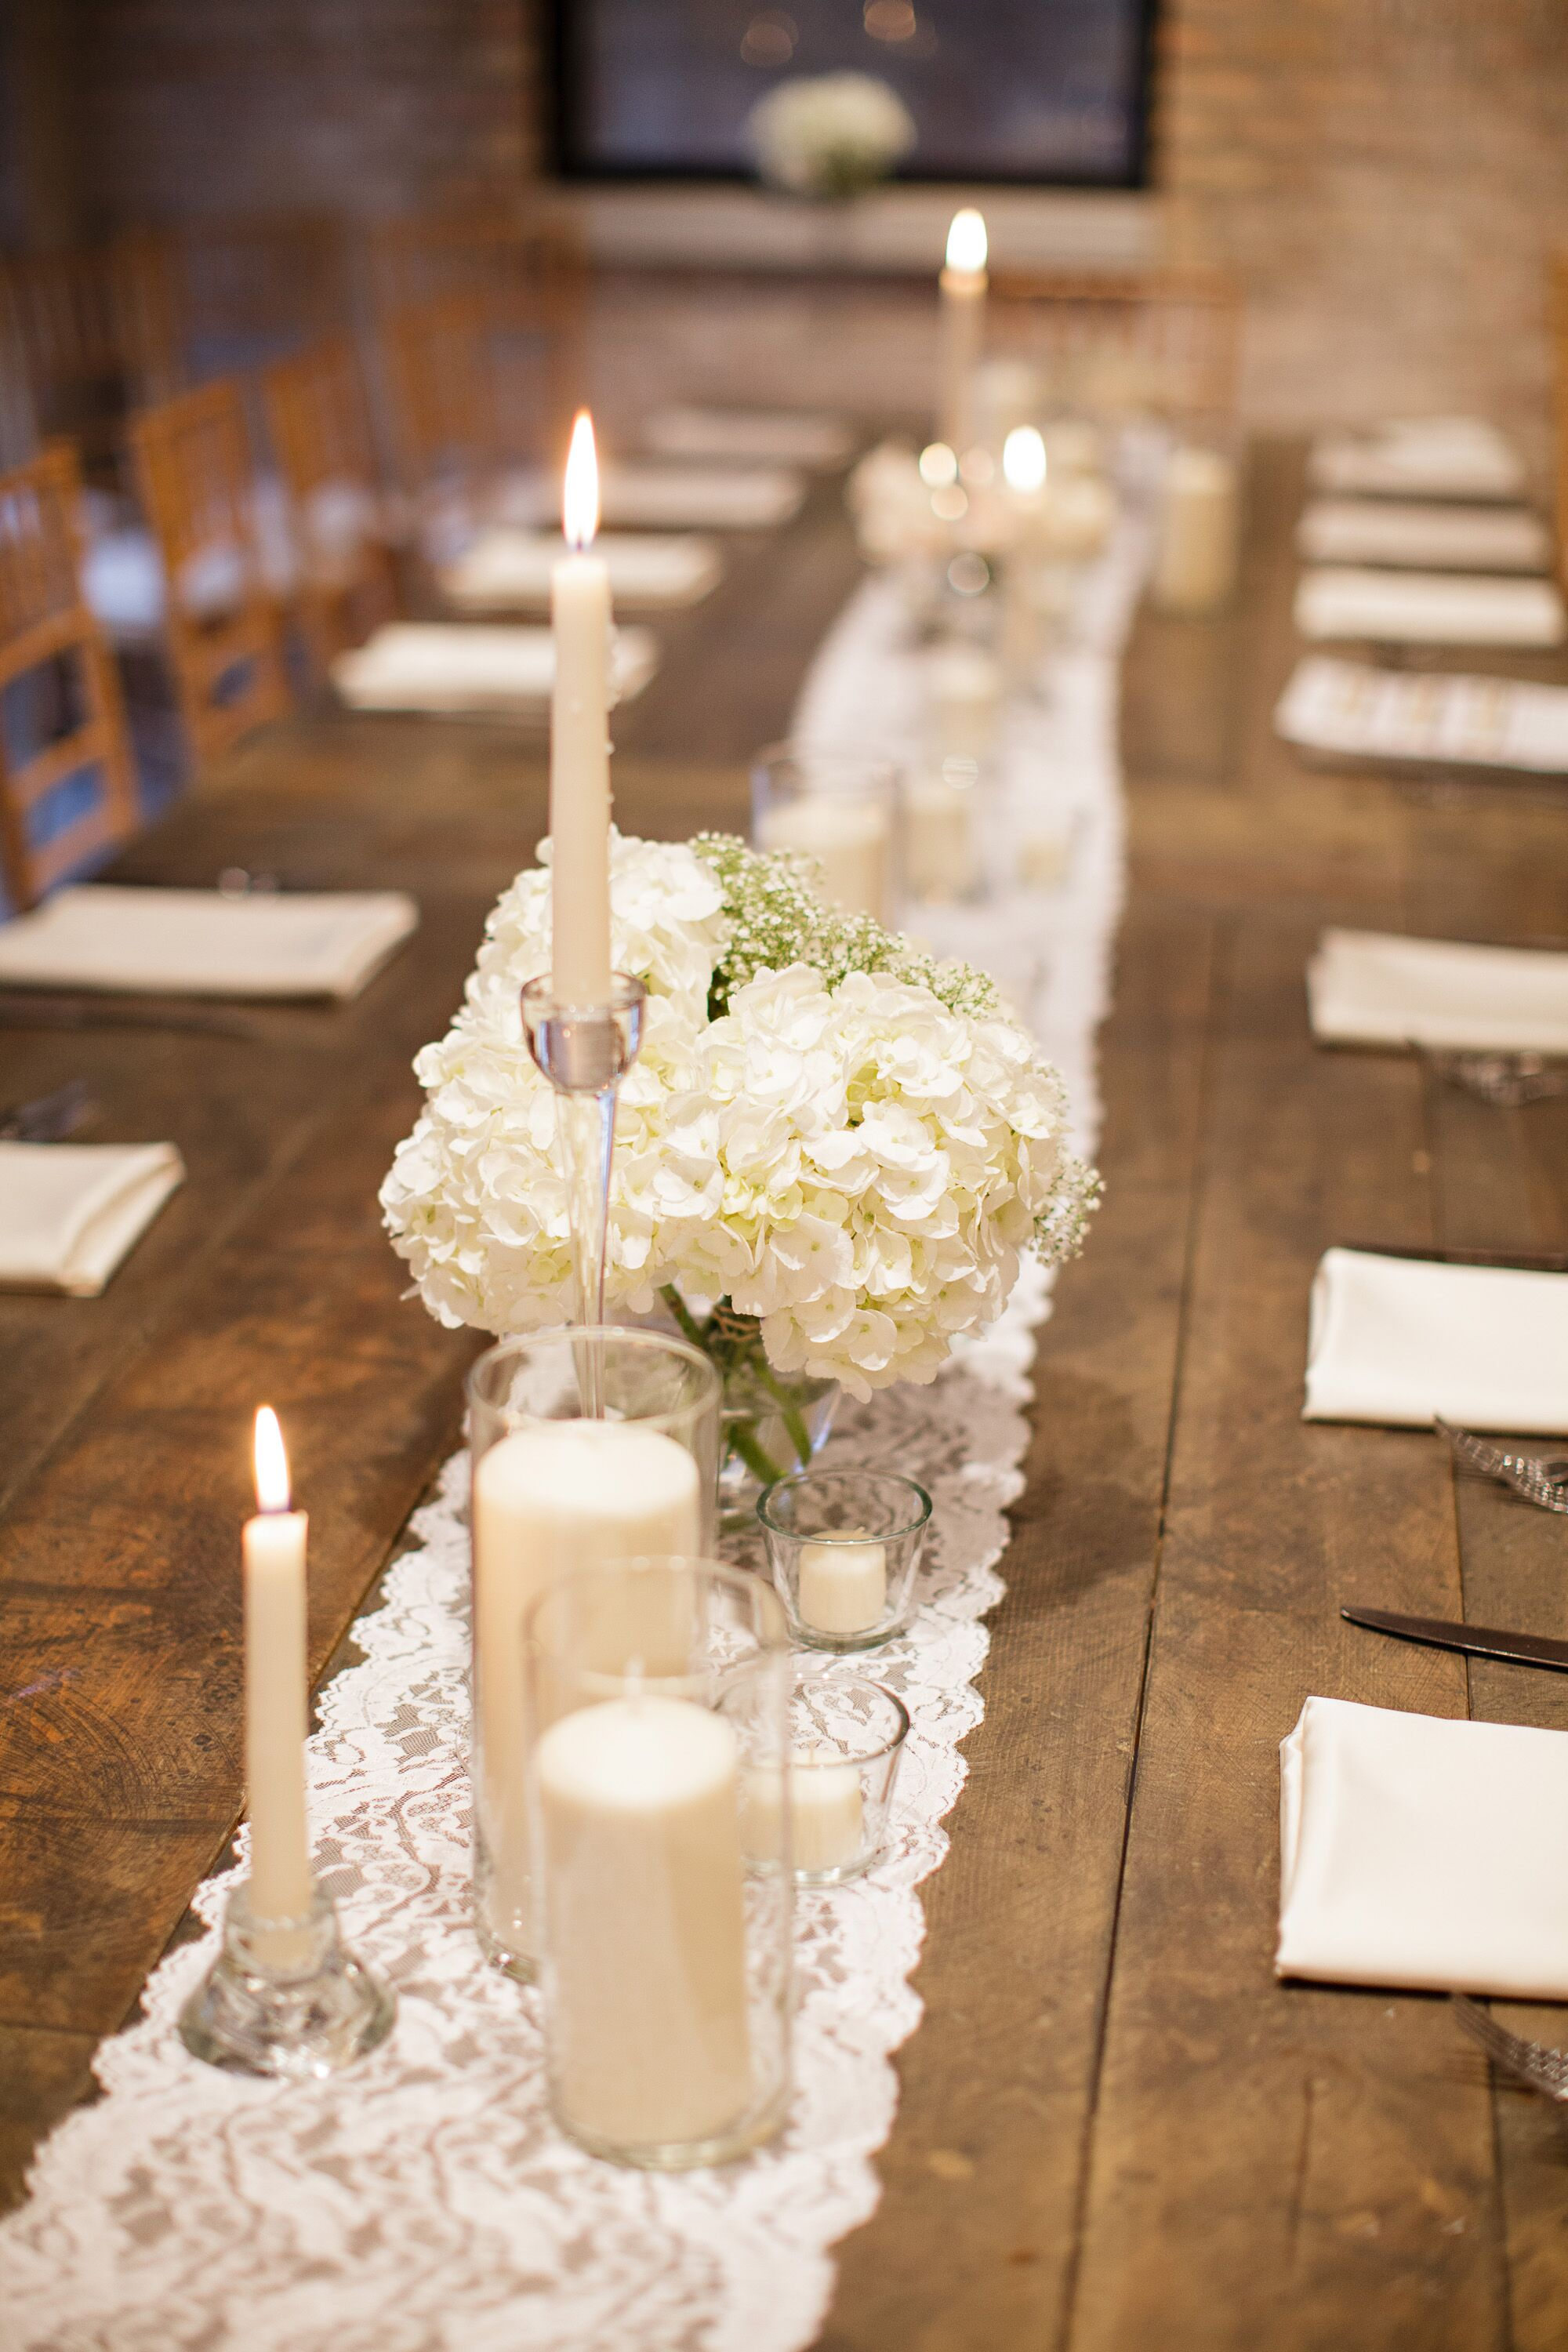 Lace farm table runner with candles and hydrangeas